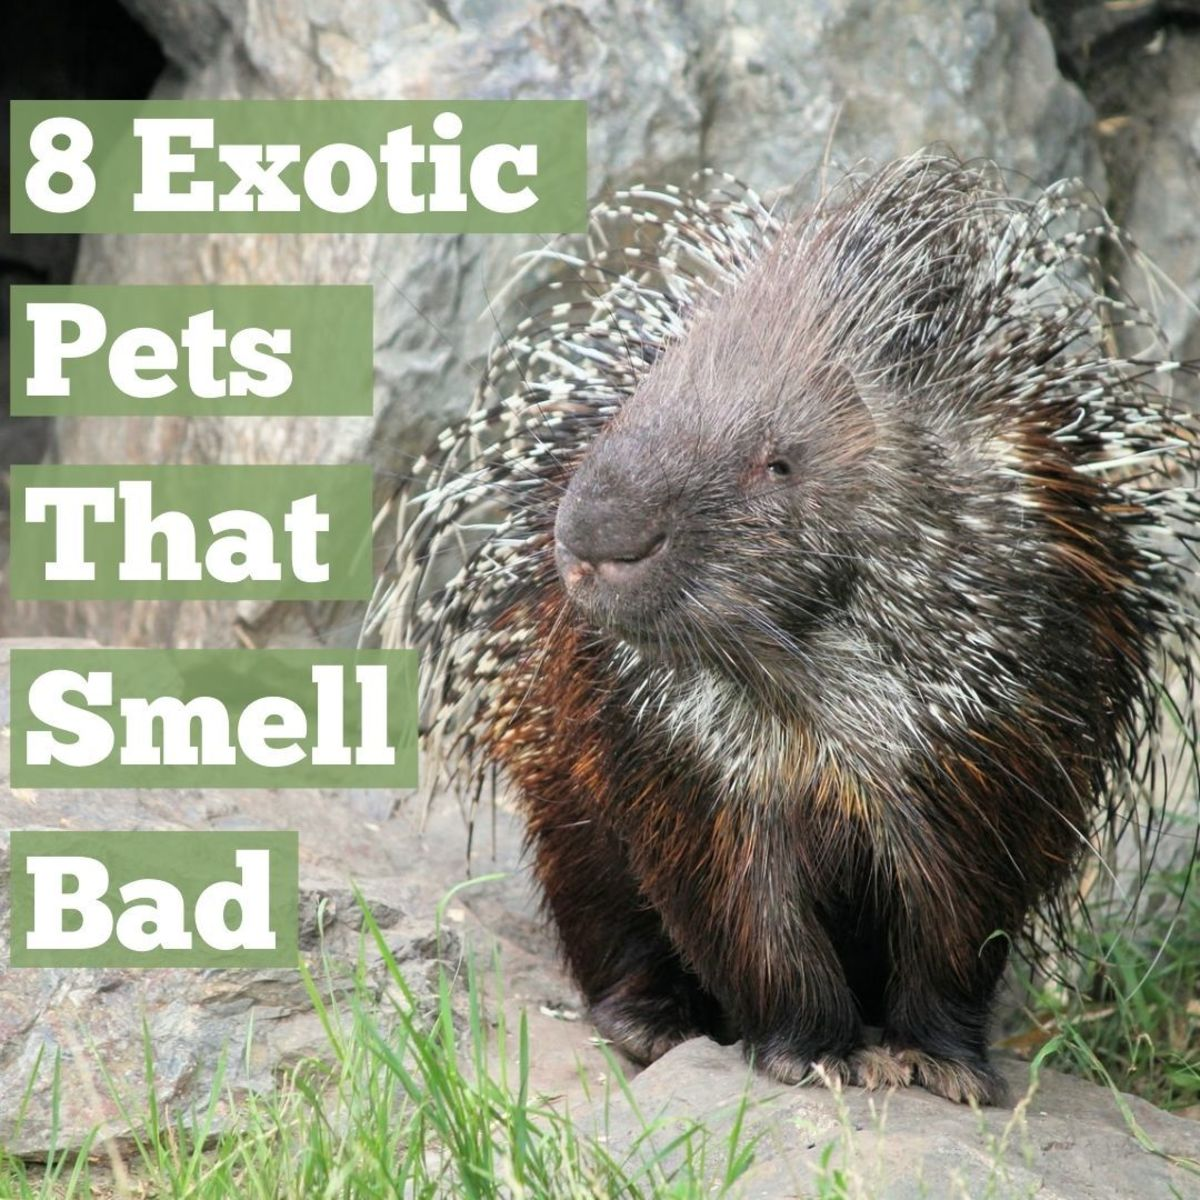 When it comes to traits that make certain animals desirable as pets, the lack of an offensive odor tends to rank fairly high.